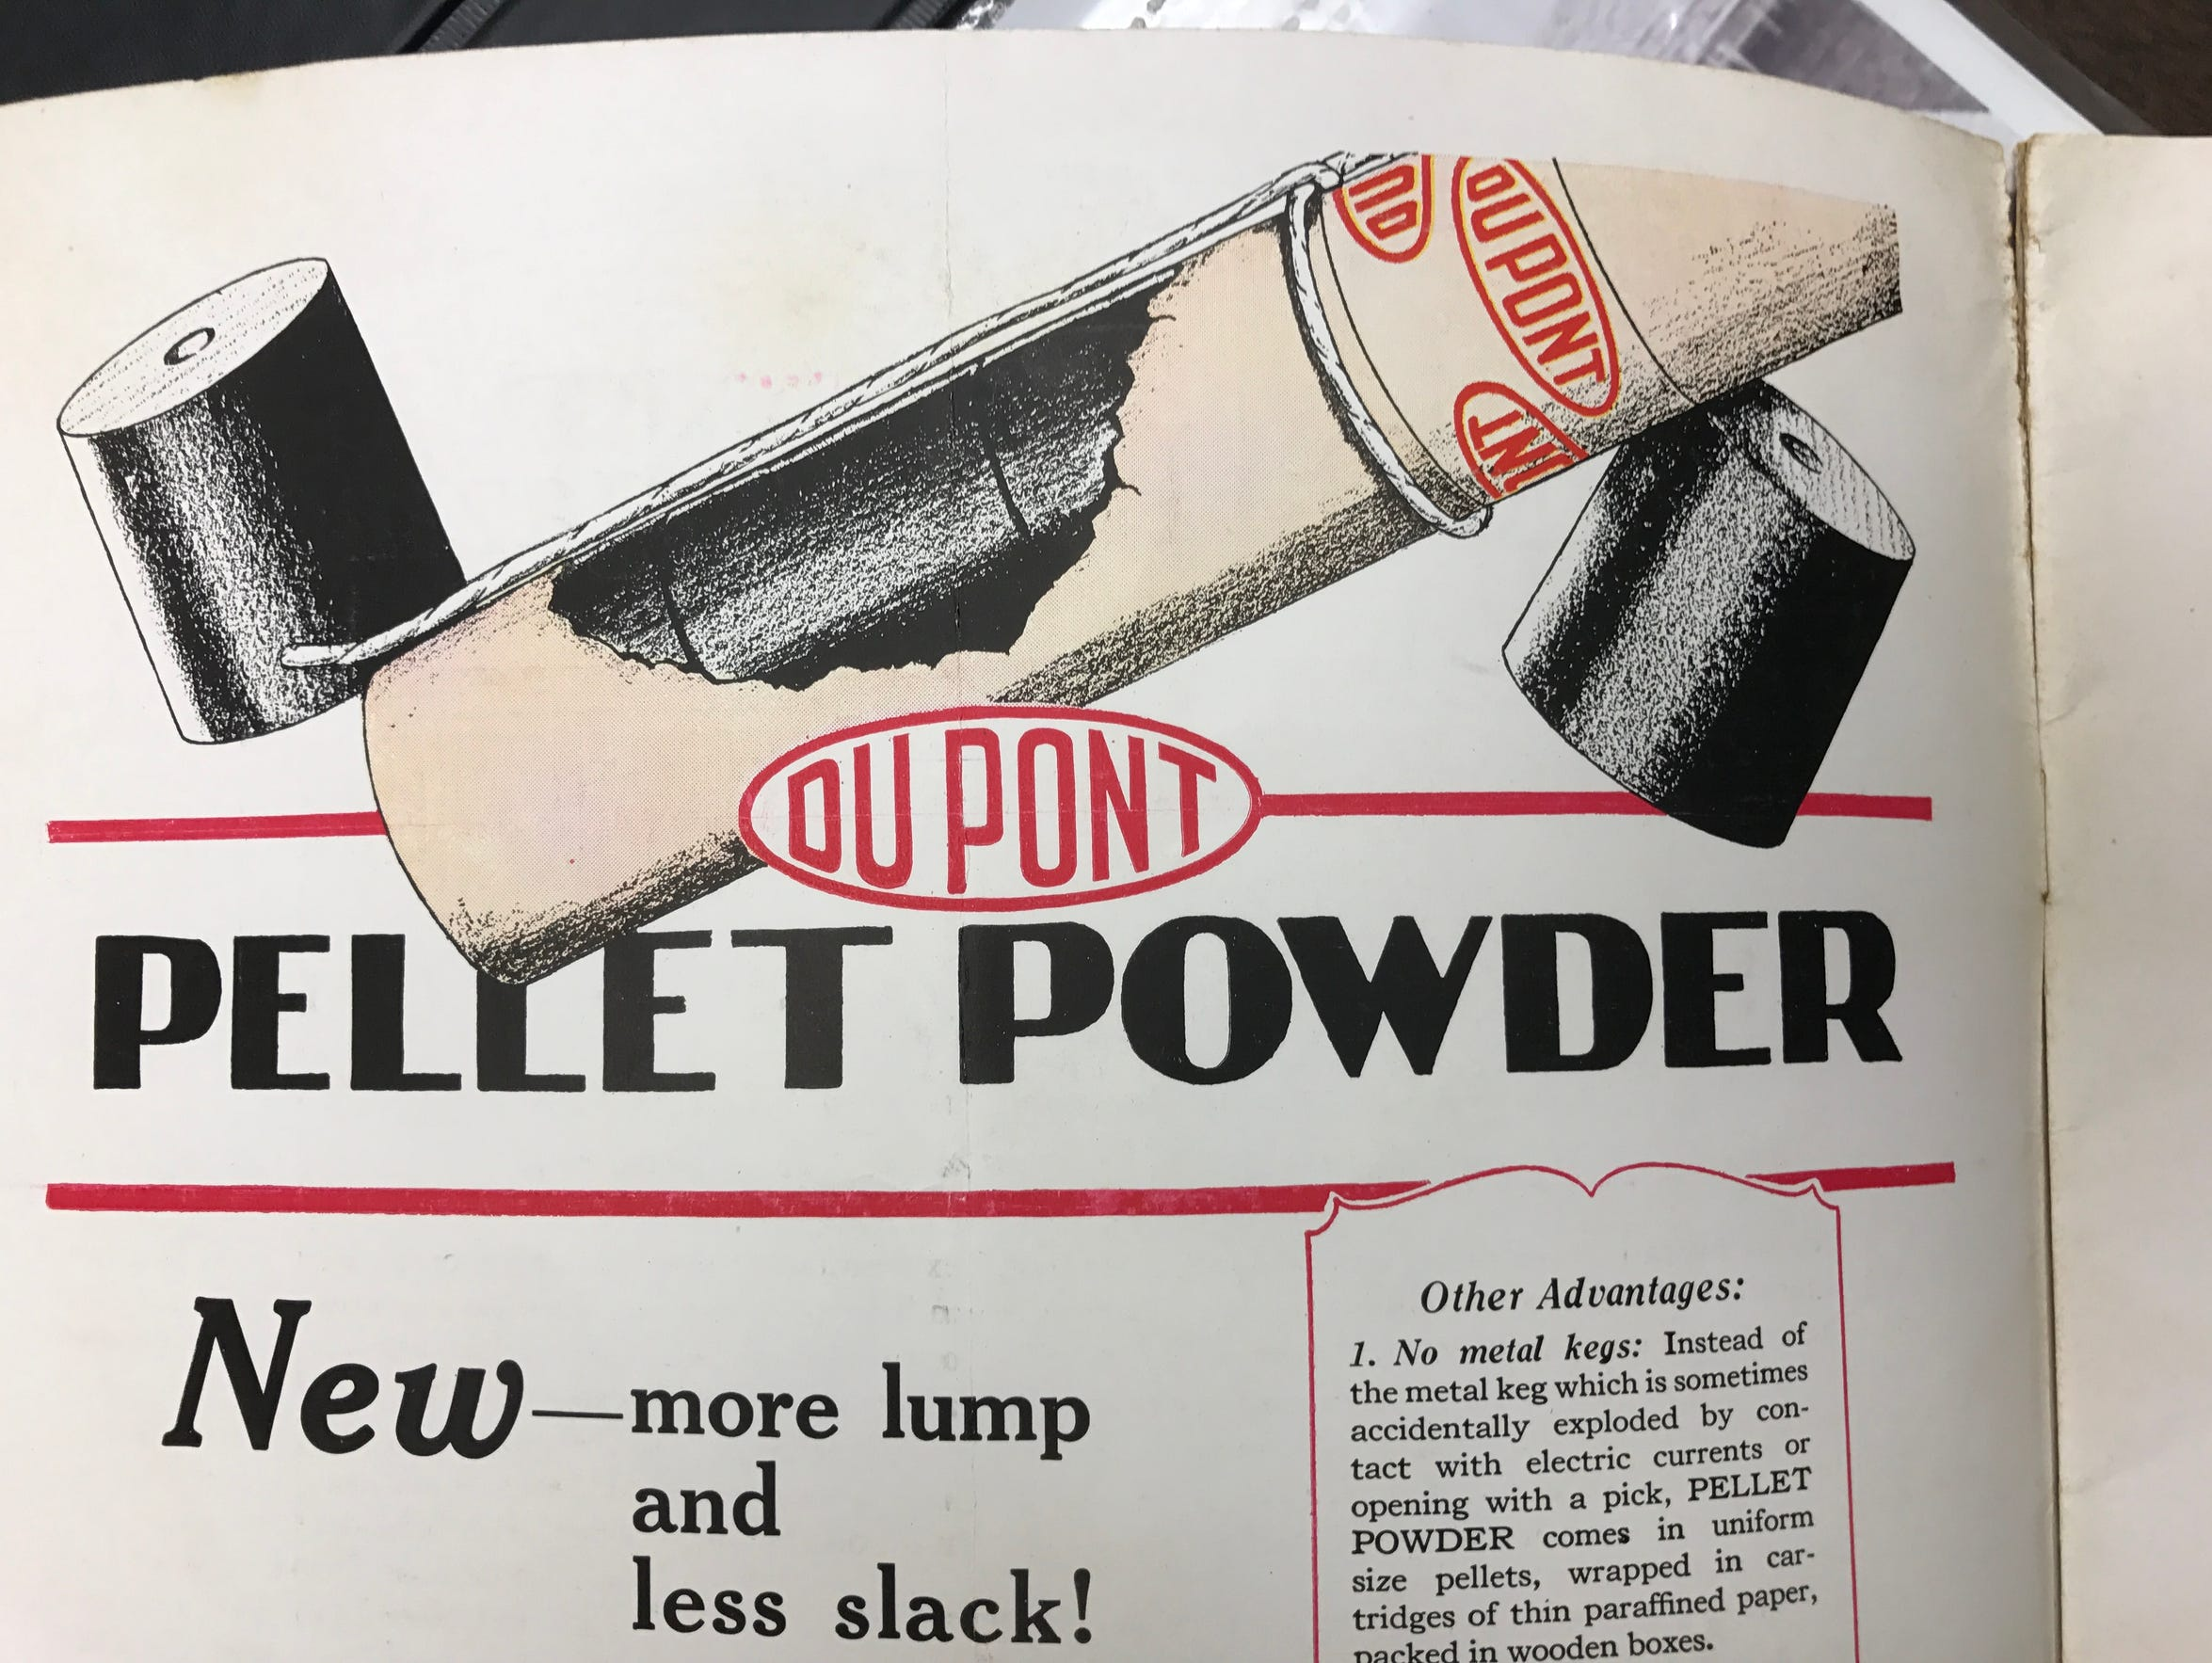 DuPont made explosive powder, blasting caps and other ammunition at its Pompton Lakes site for centuries, helping America win two world wars.